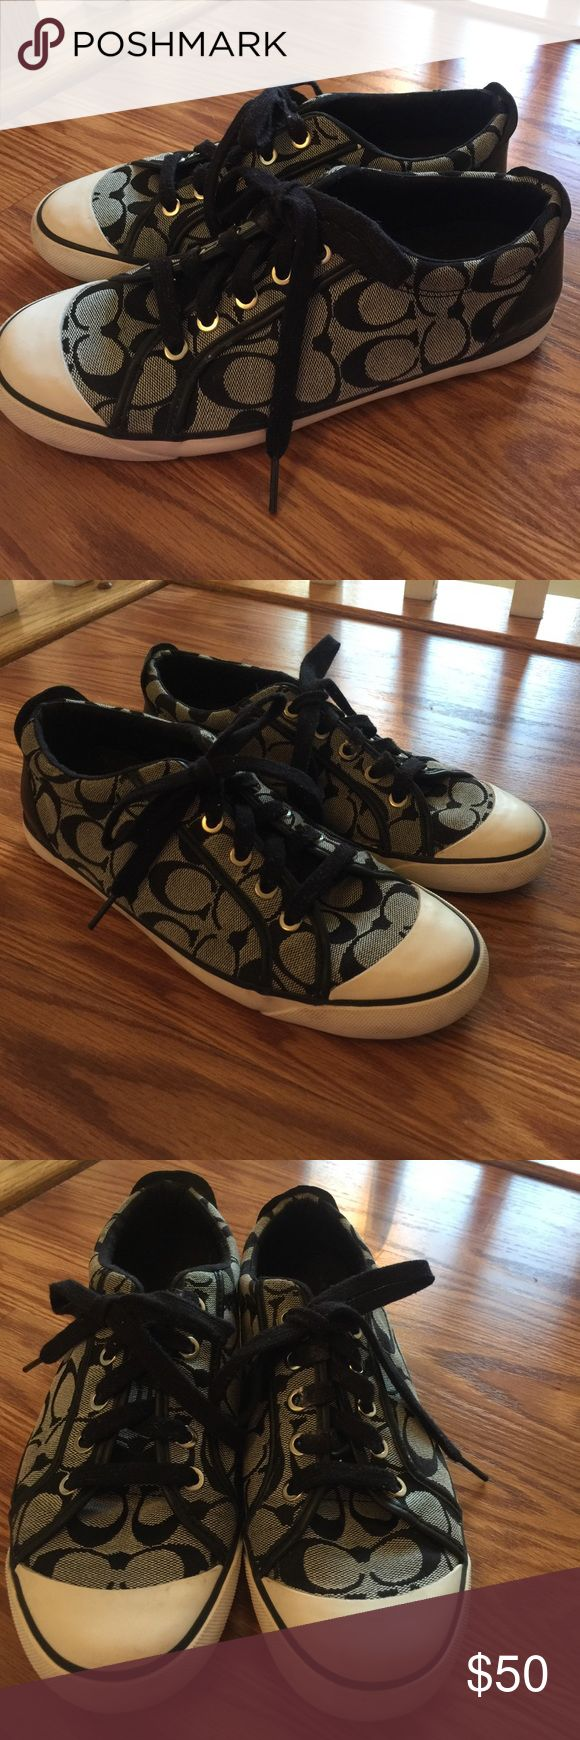 COACH SNEAKERS! SZ 9 COACH SNEAKERS in great condition! Hardly worn! SZ 9! Minor marks ..please see pictures! Coach Shoes Sneakers